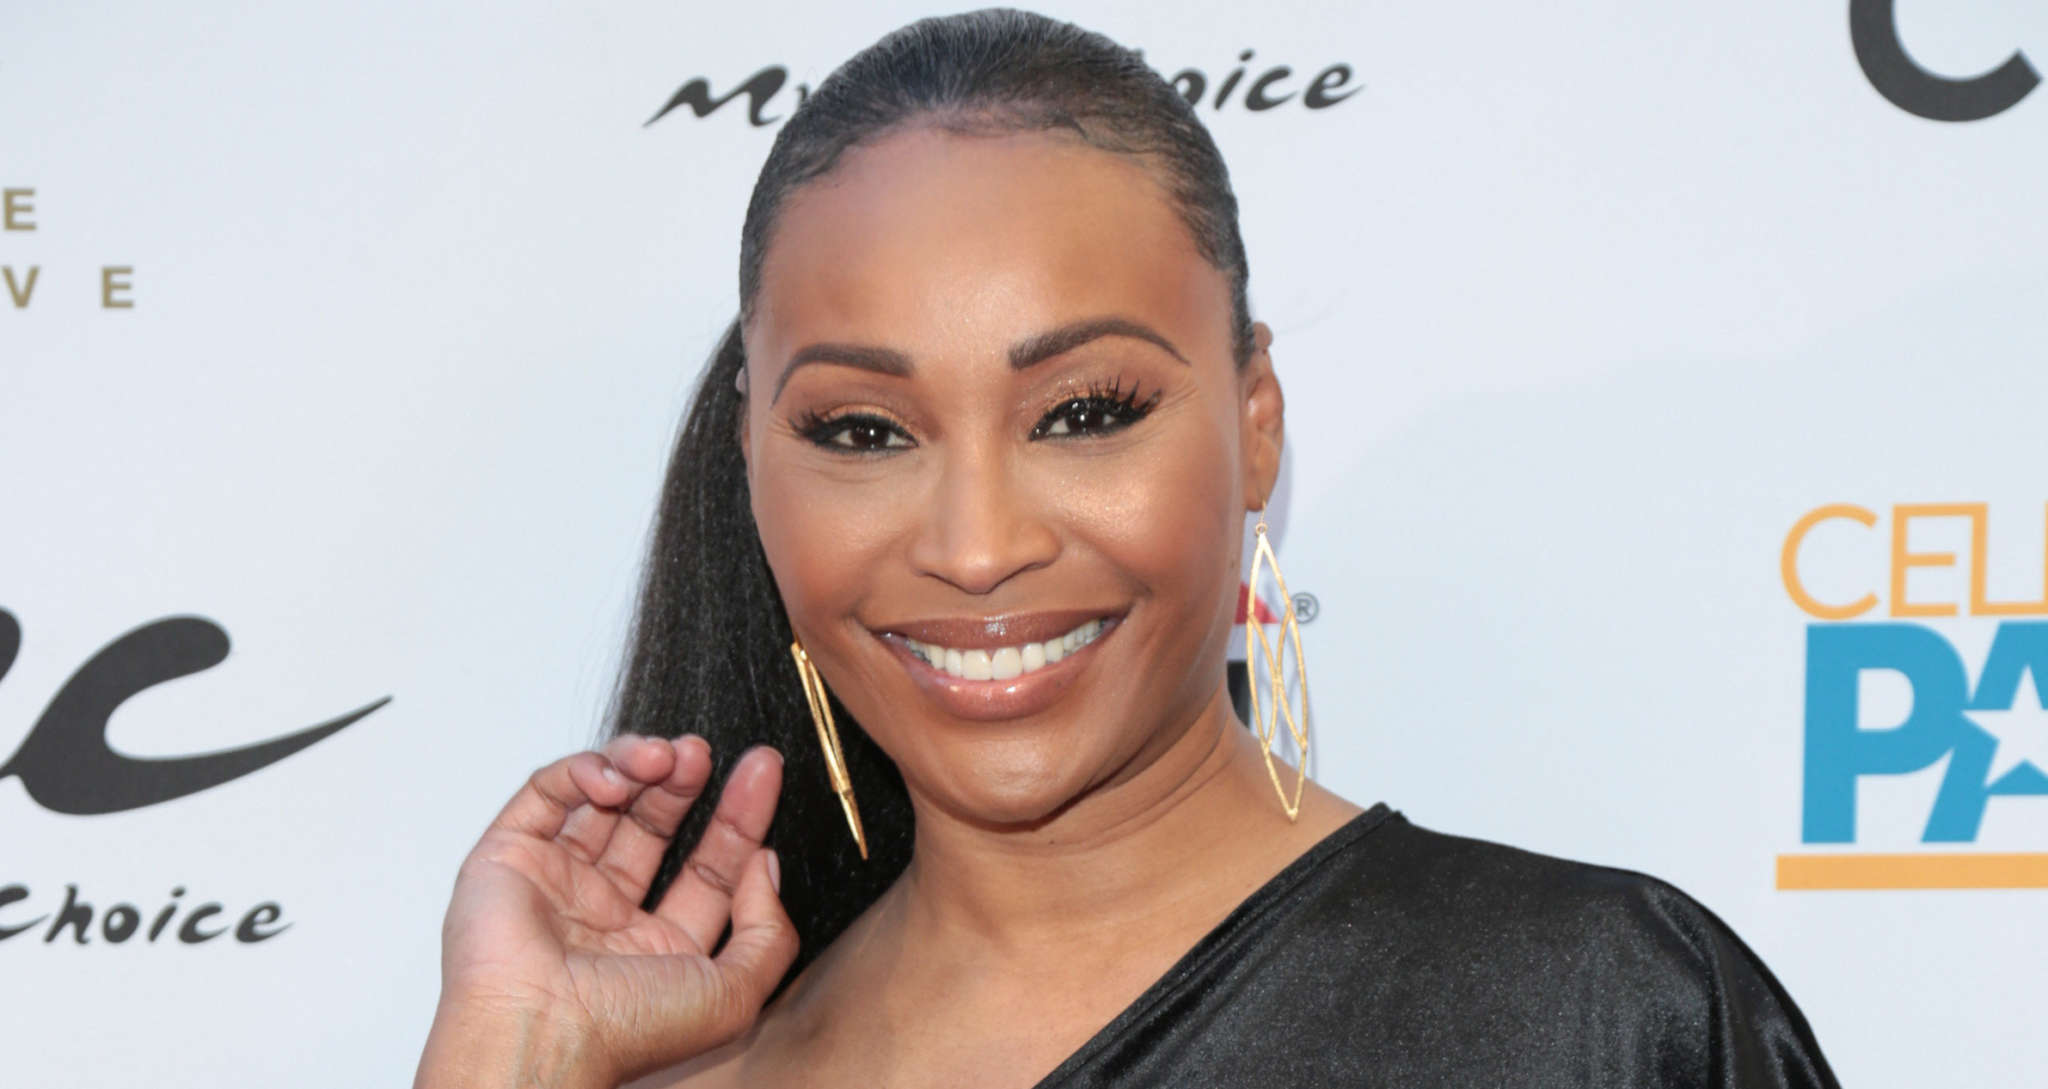 Cynthia Bailey Shares Pics With Her RHOA Personal Photographer – Find Out Why Fans Throw Shade